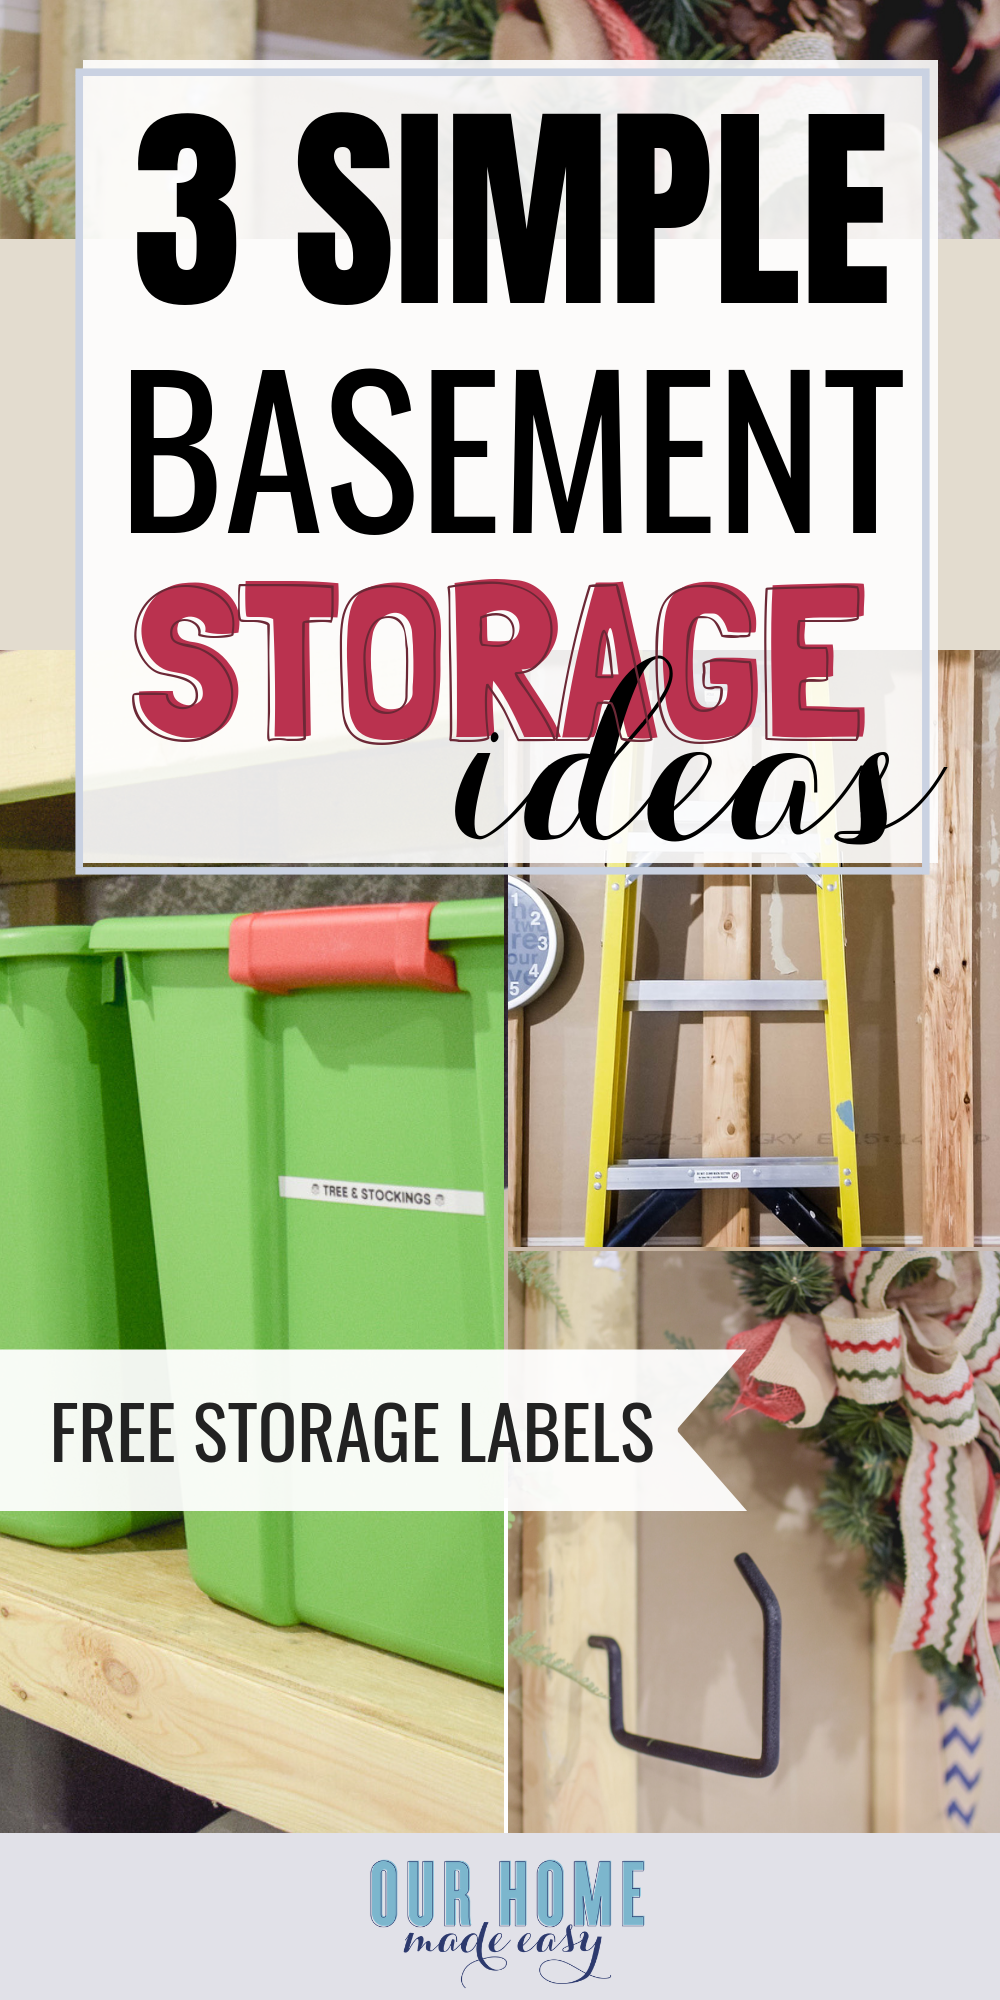 These basement storage organizing ideas will help you get started on gathering your items and making sense of the stuff downstairs.   #organization #organizing #ourhomemadeeasy